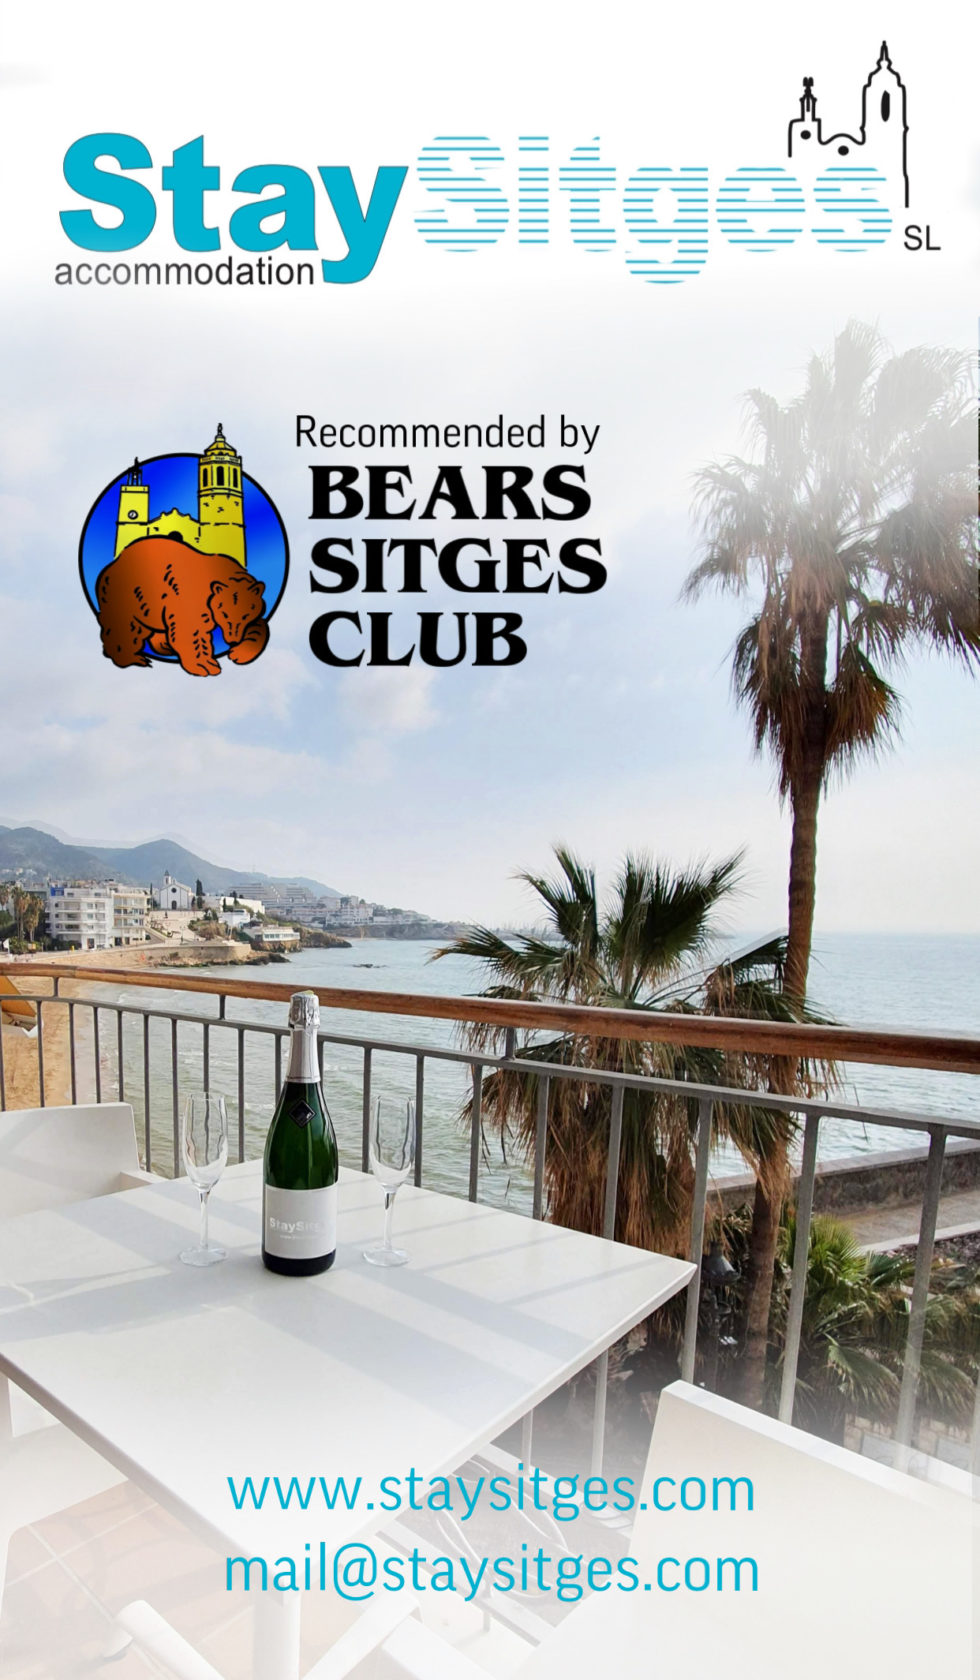 A Stay Sitges en Bears SItges